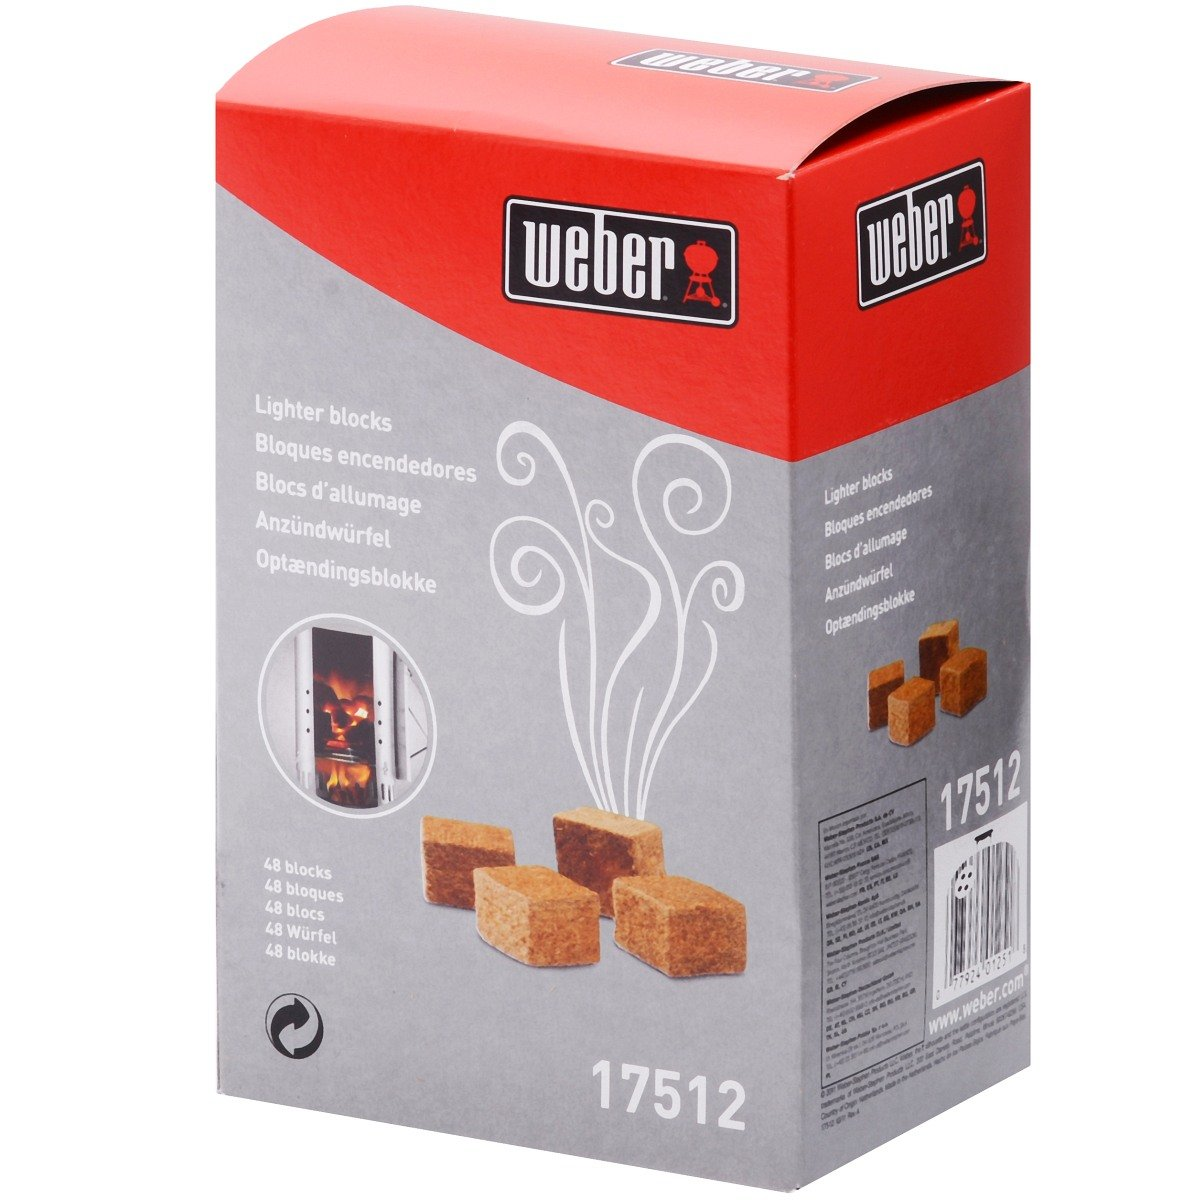 Weber 17512 Barbecue/Grill Accessorie